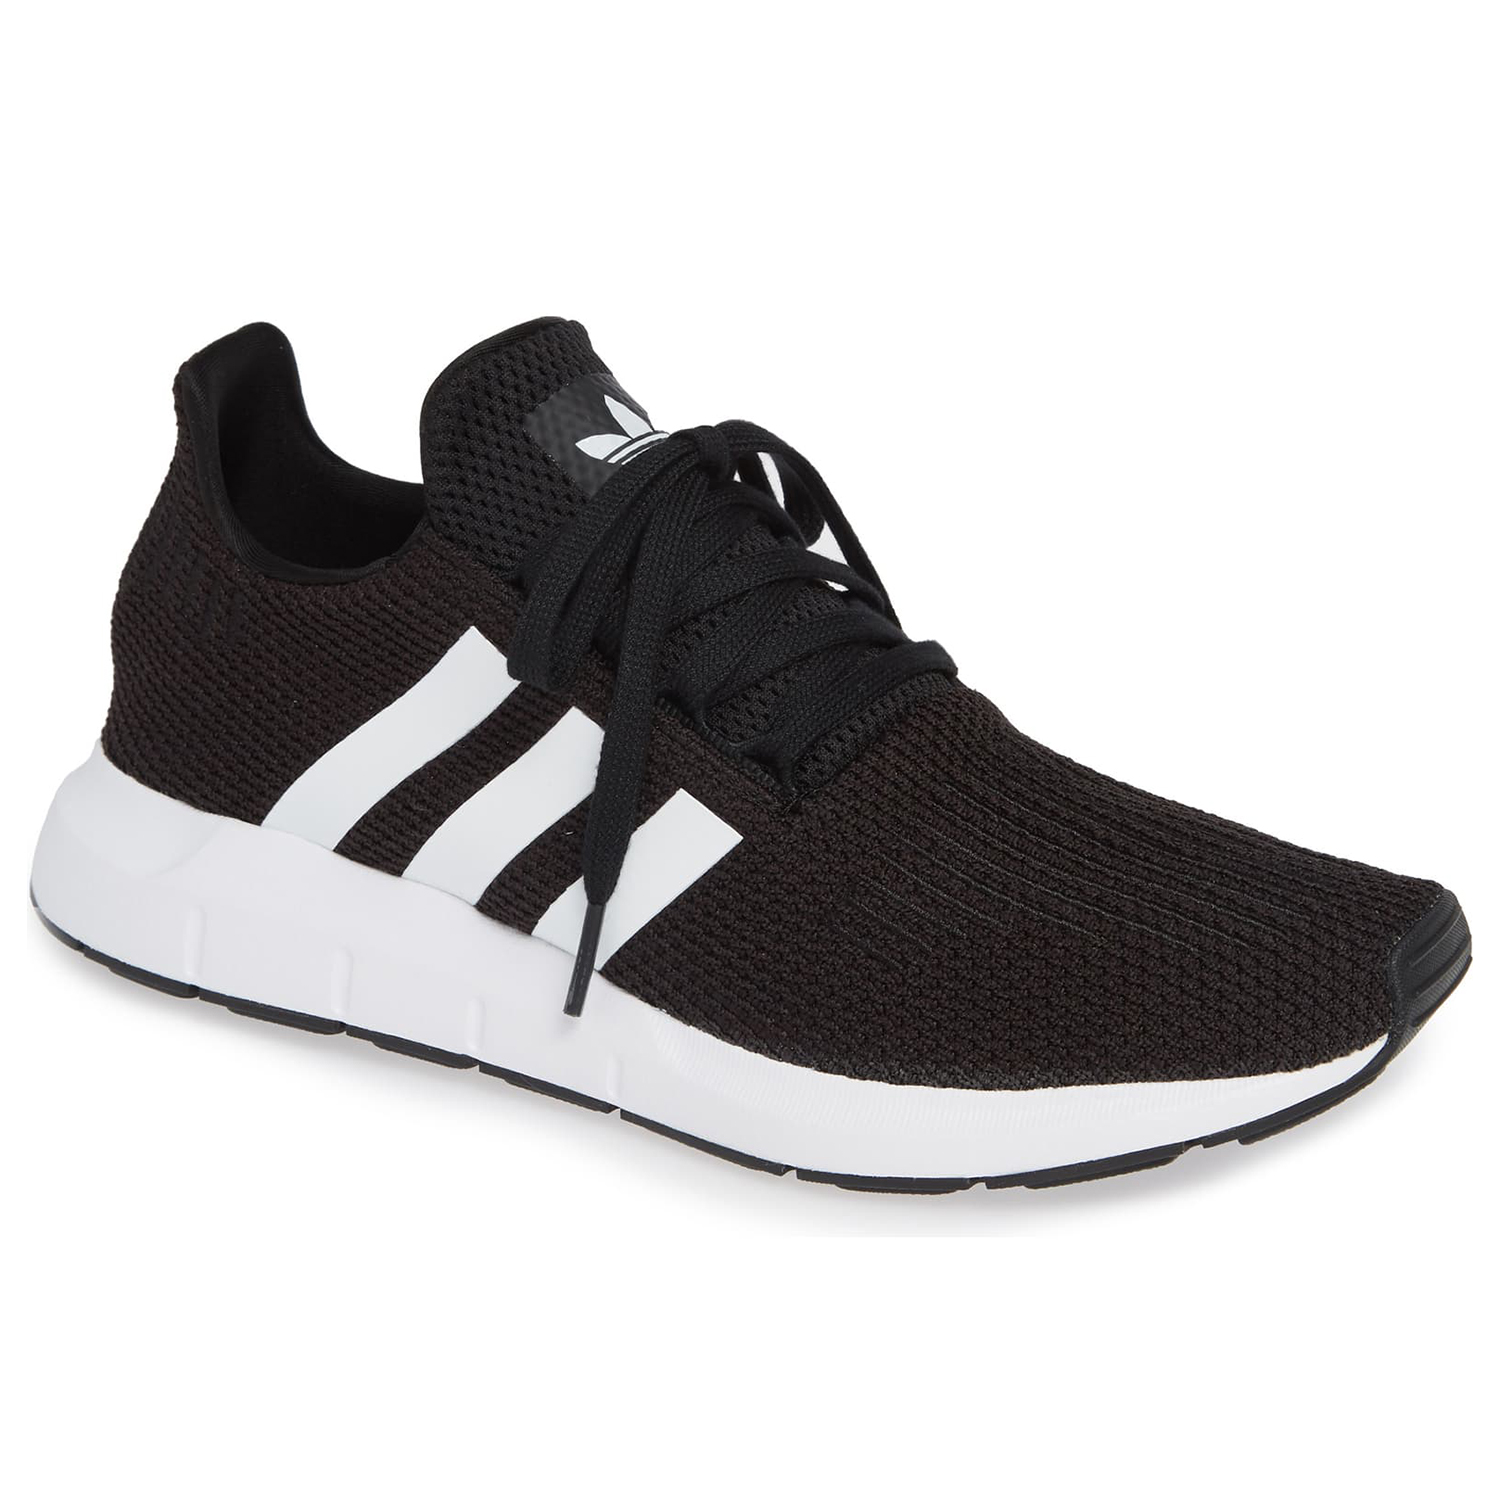 adidas Swift Run Sneaker Black